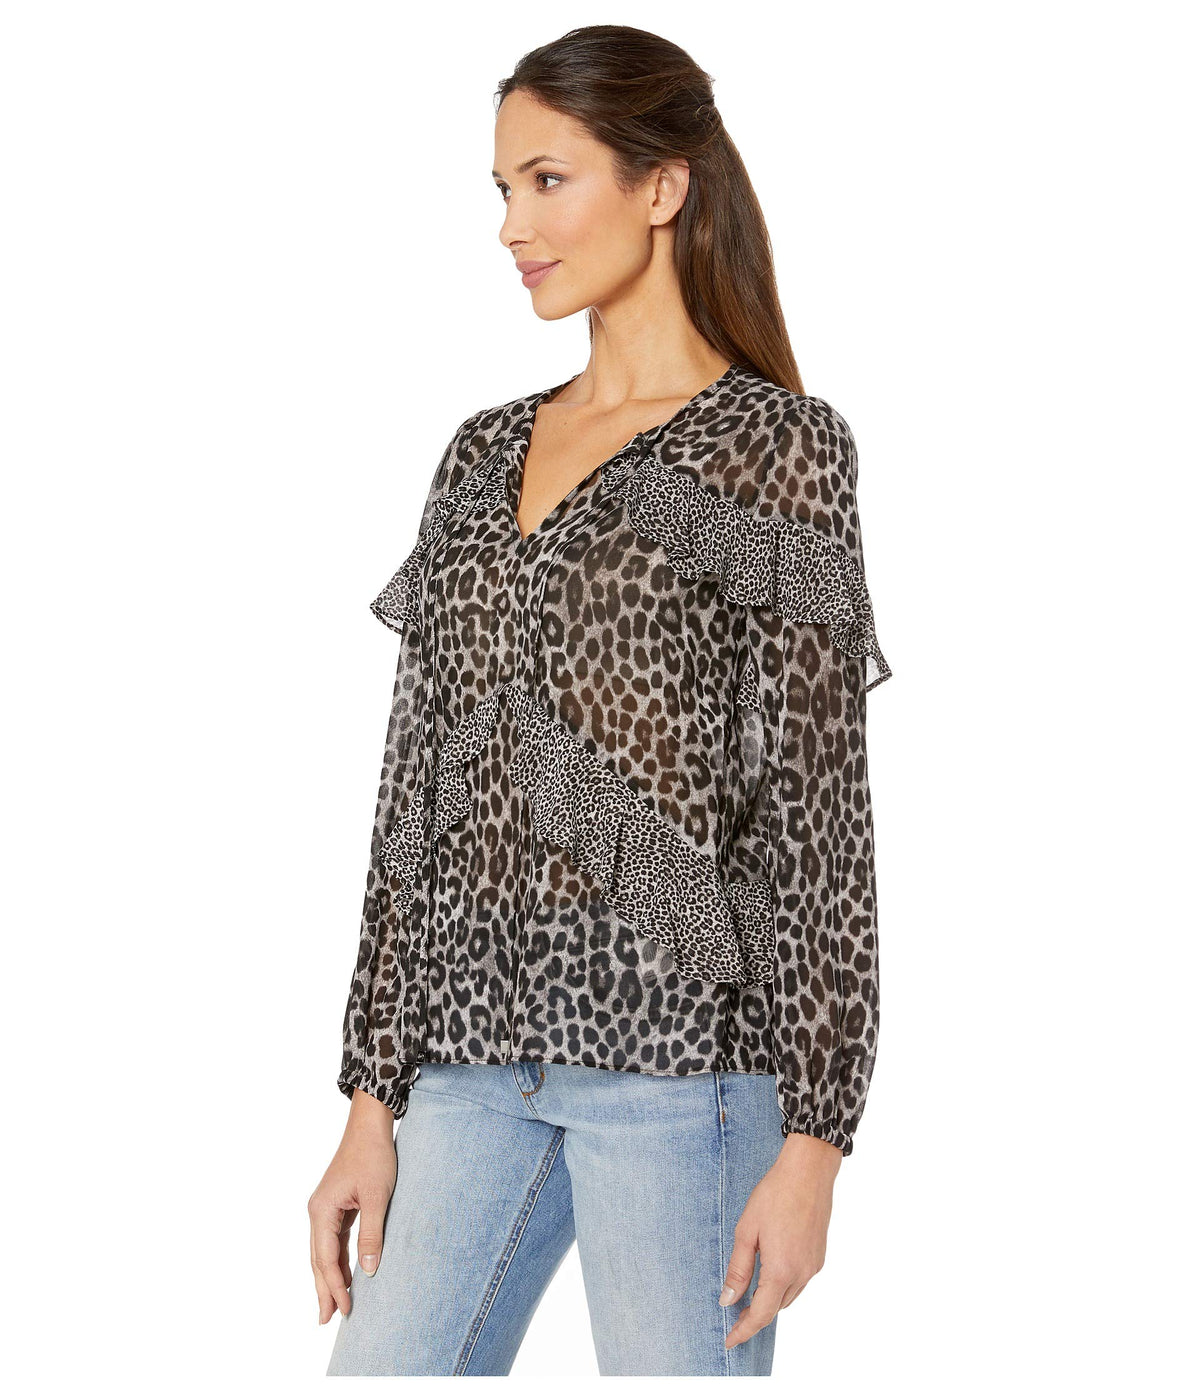 Cheetah Mix Flounce Top